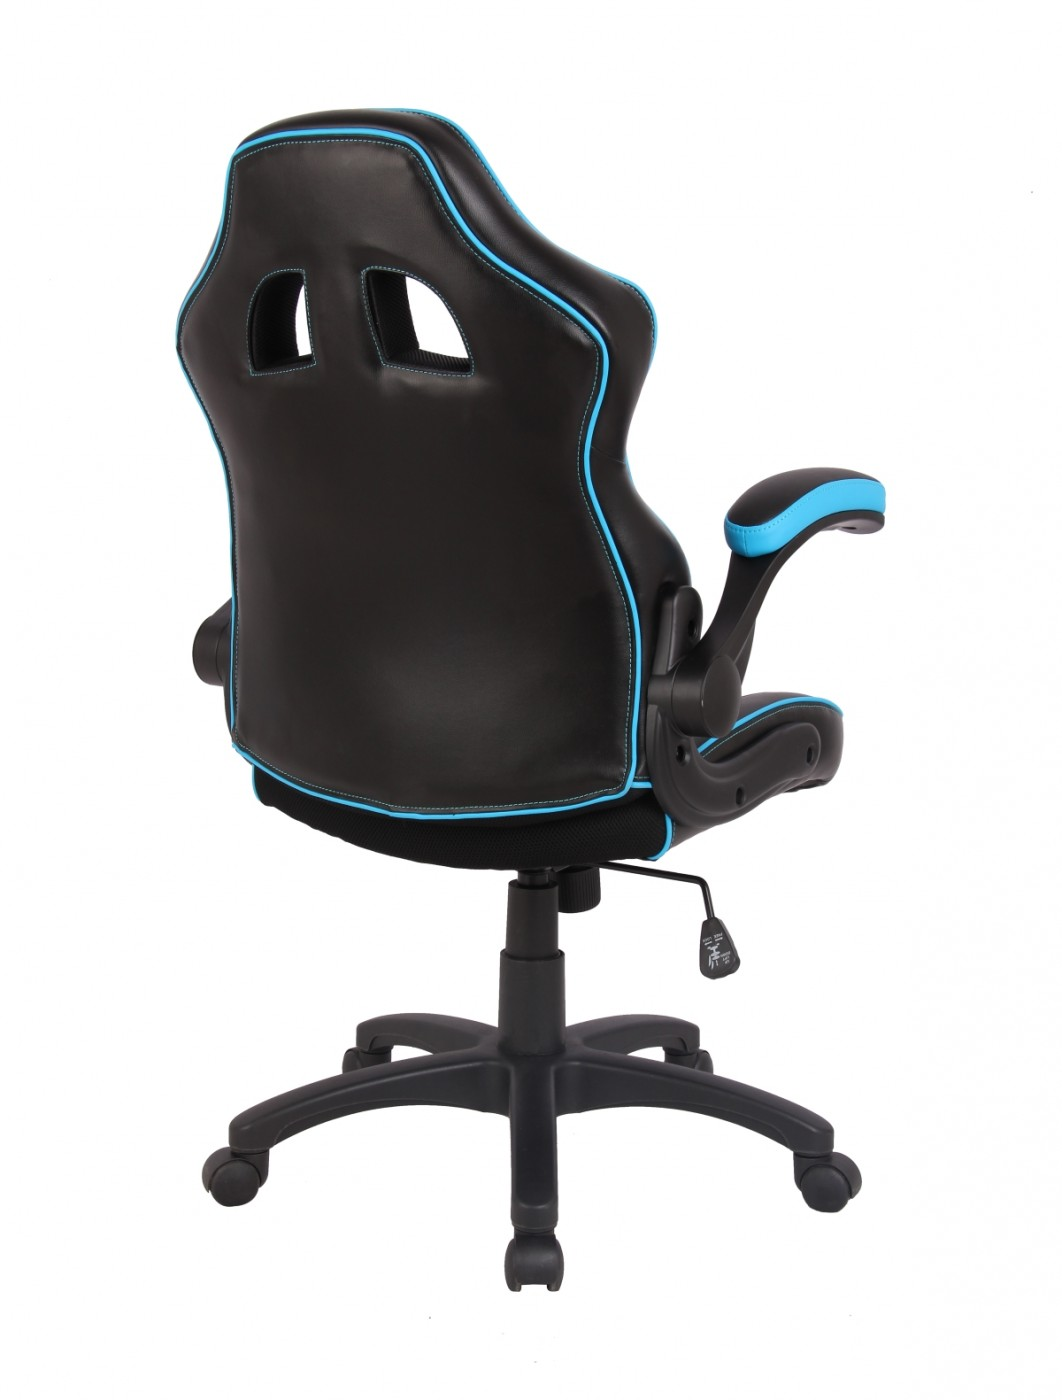 Gaming Chairs - Eliza Tinsley Predator Executive Office Chairs BCP/H600/BK/BL